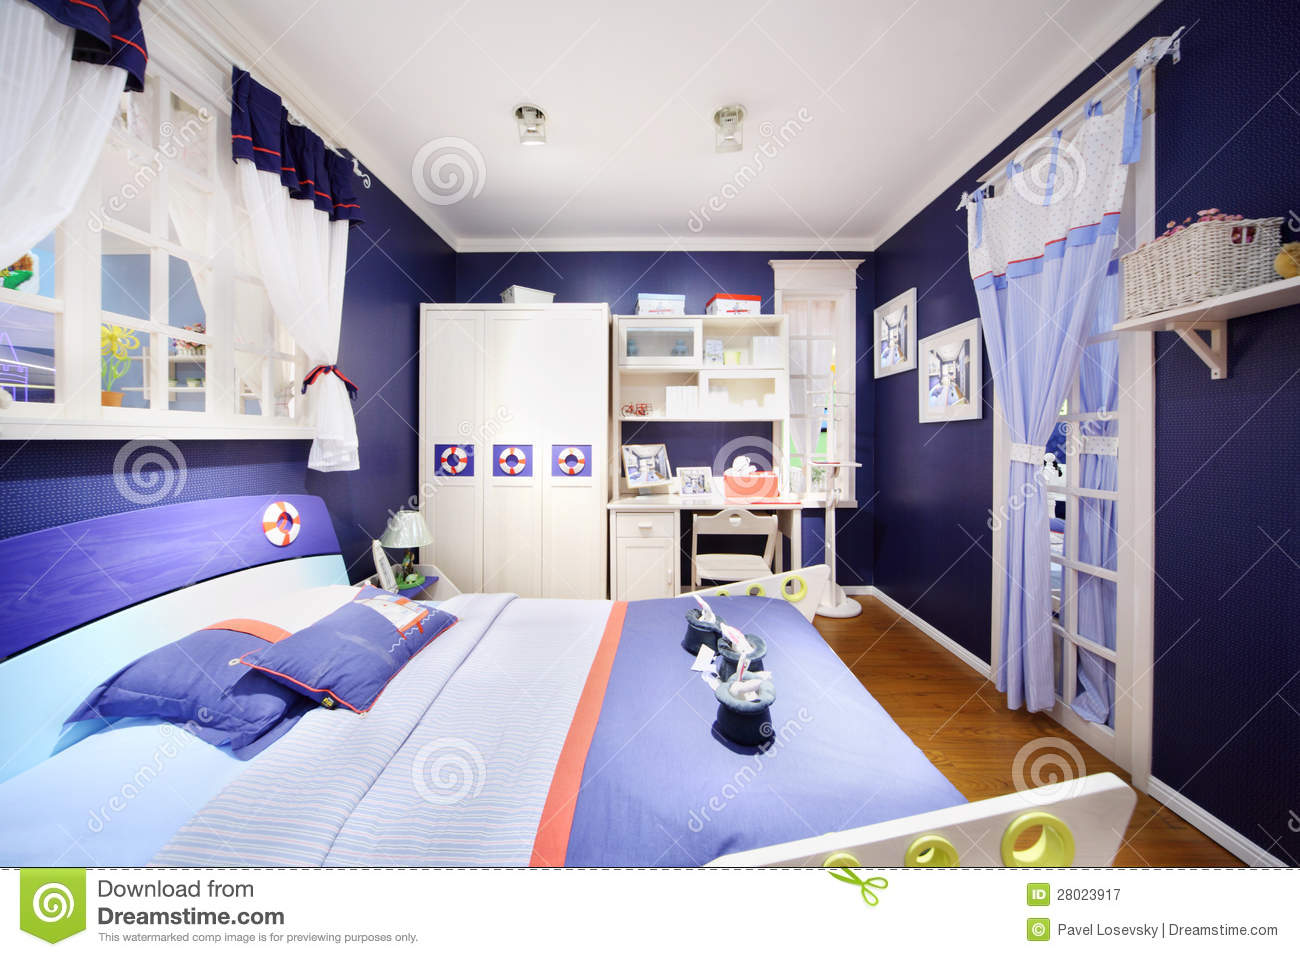 stilvolles blaues schlafzimmer f r jungen lizenzfreie. Black Bedroom Furniture Sets. Home Design Ideas